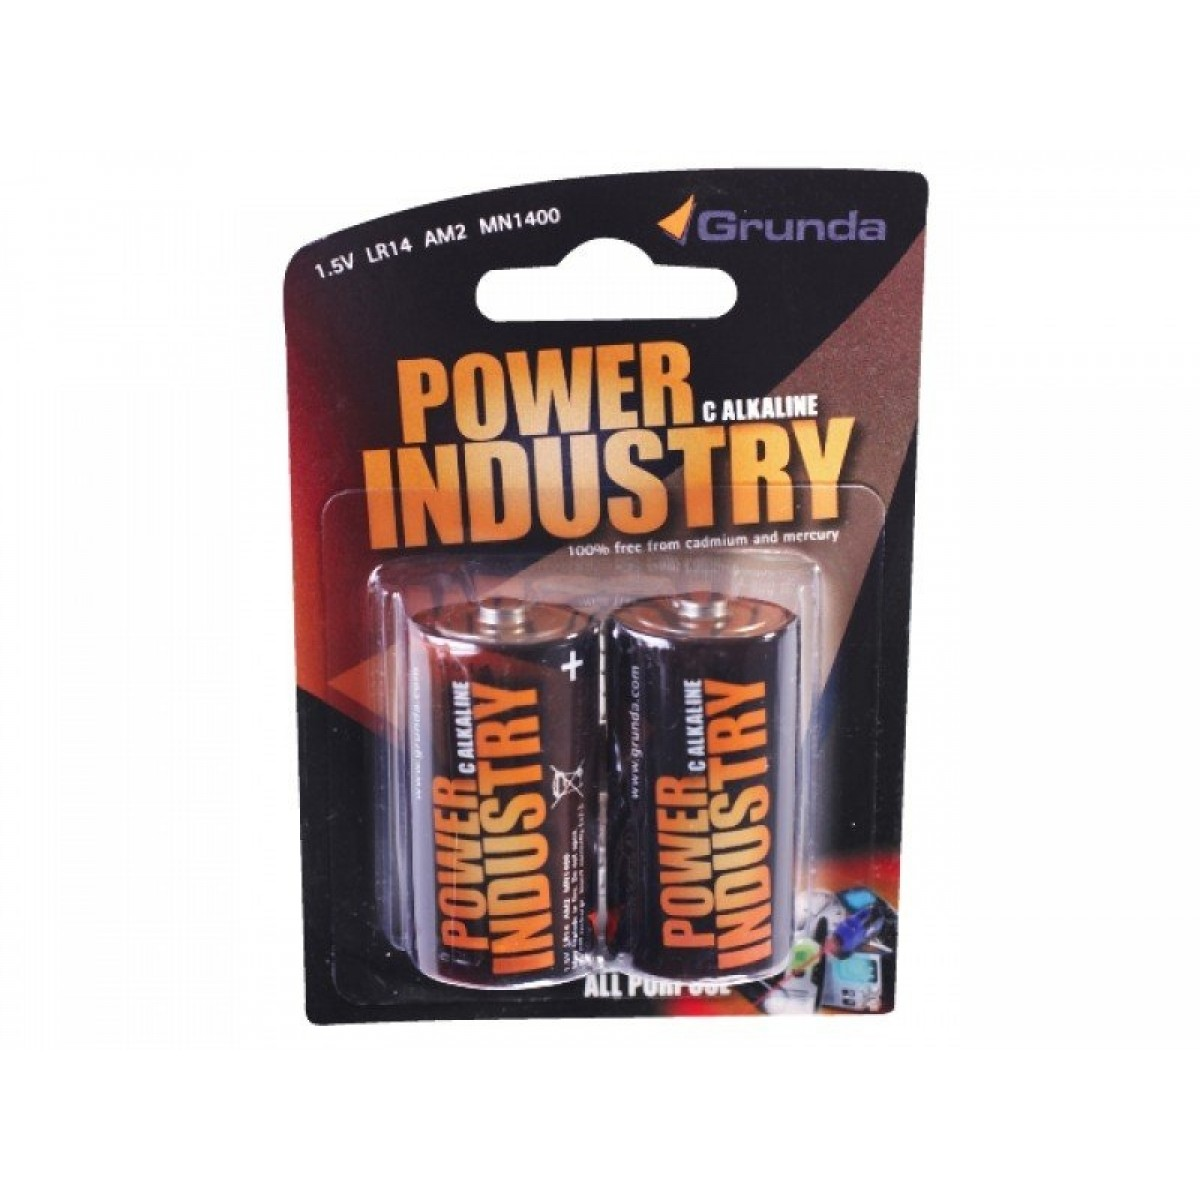 Grunda Power Batteri 2 stk Alkaline C-31